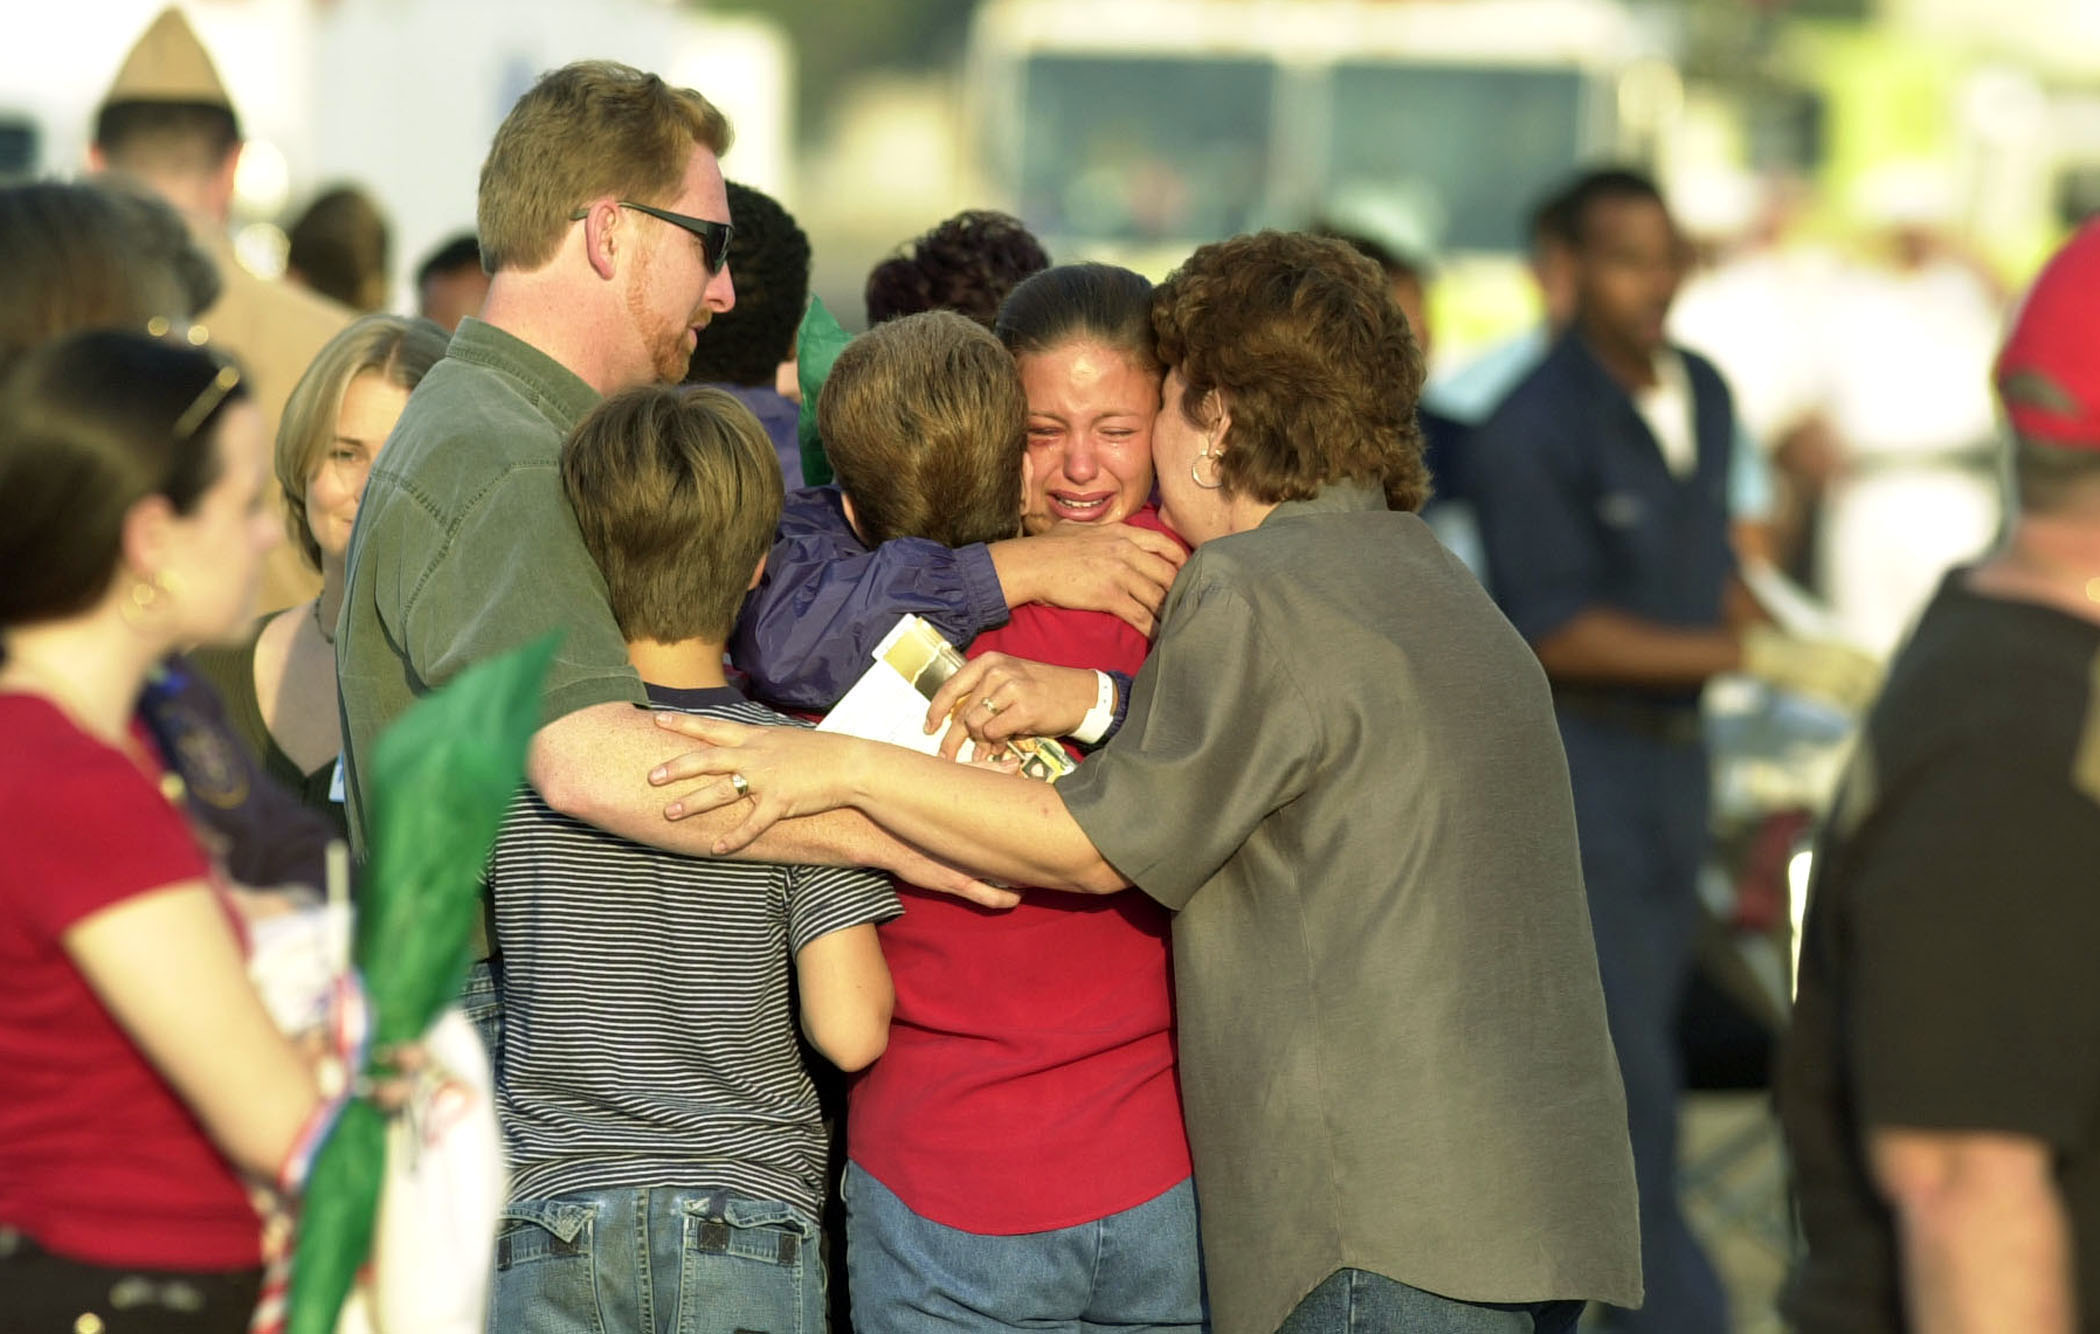 A sailor is reunited with her family at the Naval Air Station October 15, 2000 in Norfolk, VA. 33 Sailors were injured when a suspected terrorist bomb struck the U.S. Navy destroyer USS Cole October 12, 2000 (Navy Photo)